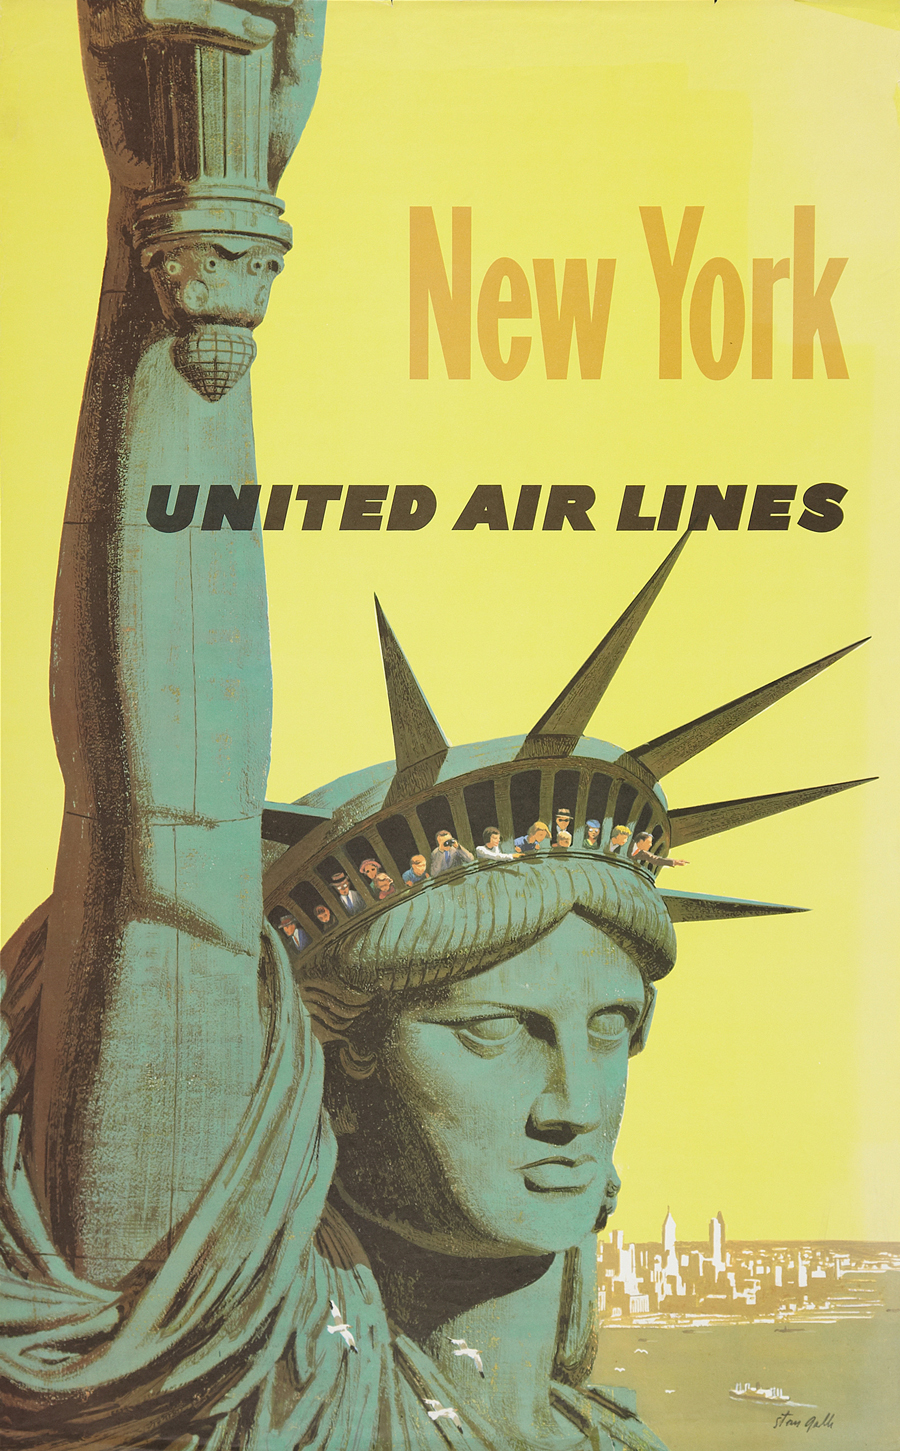 United Airlines New York travel advertising poster